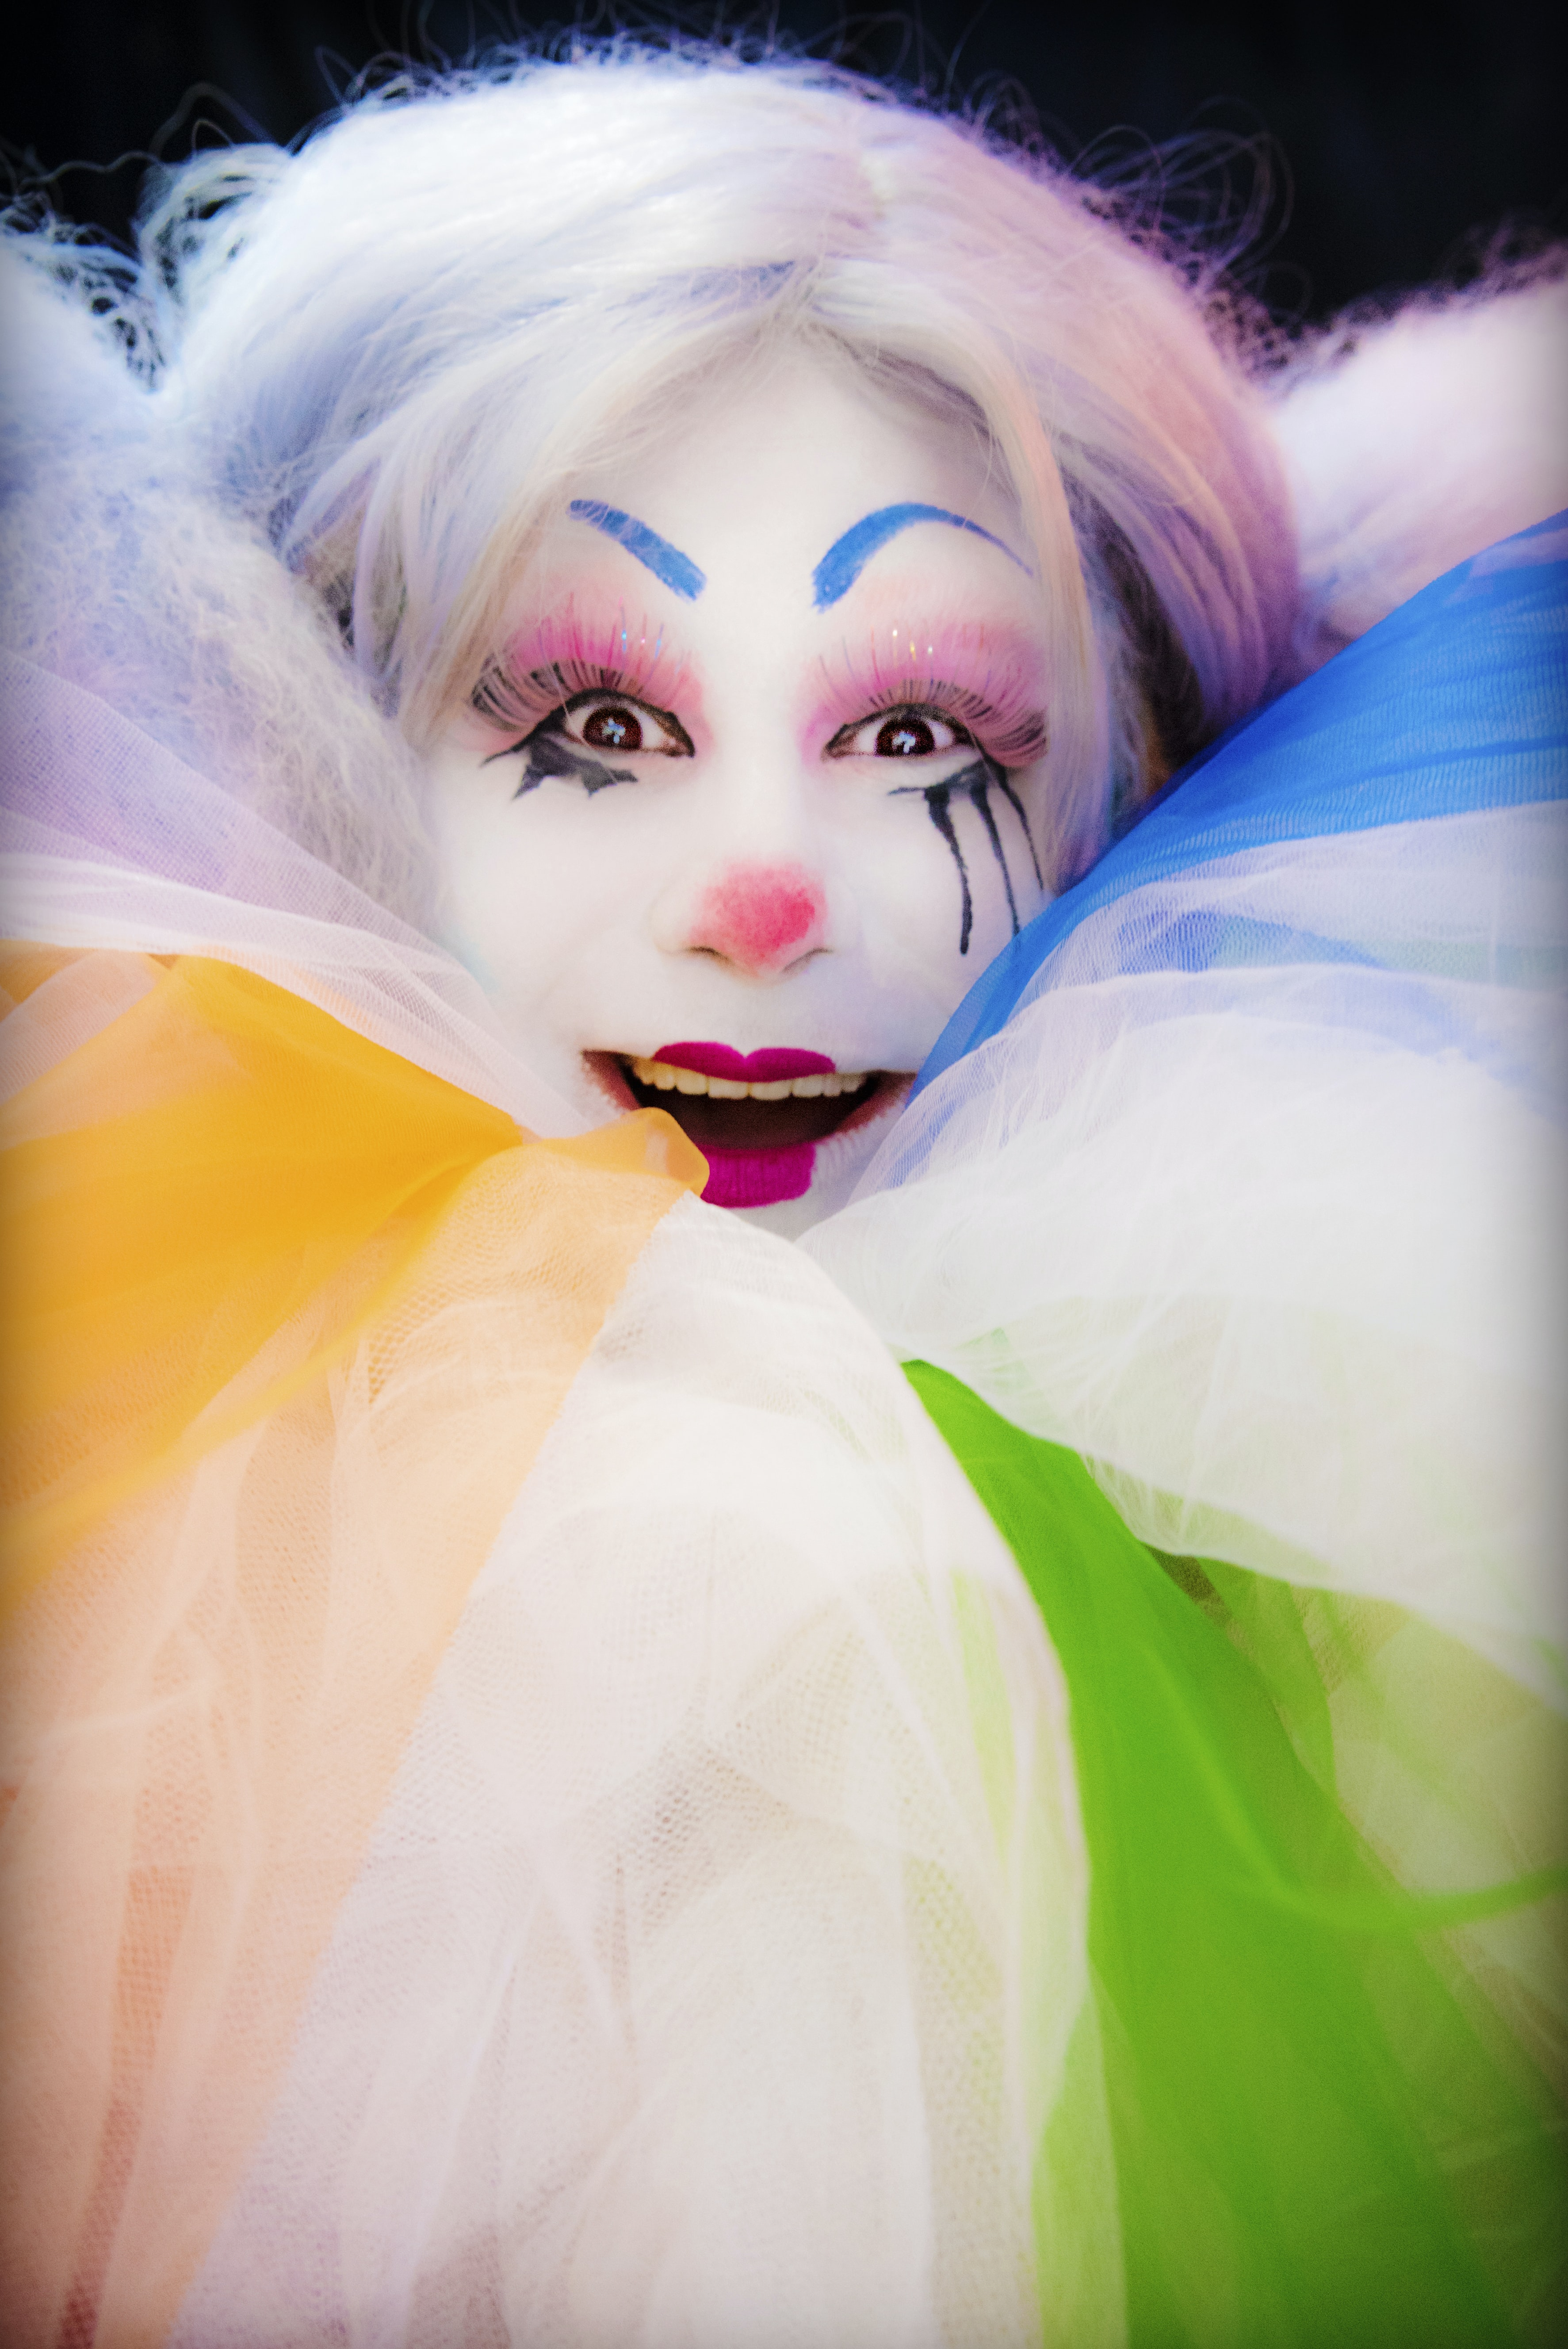 female jester character photo